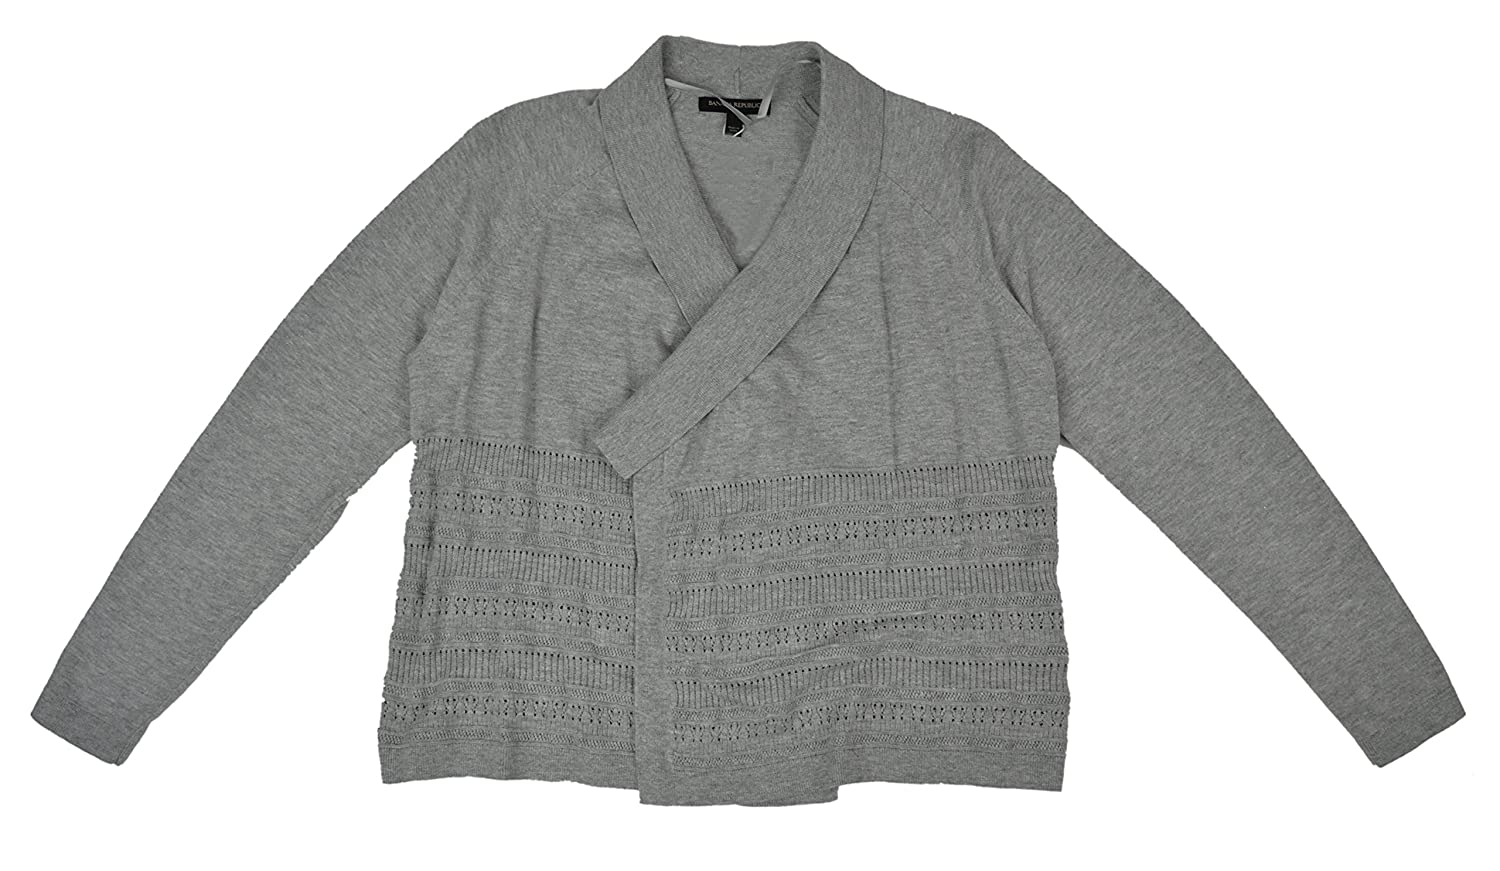 9226143b199 Amazon.com  Banana Republic Women s Stitch Pointelle Cardigan Sweater Light  Heather Grey Small  Clothing